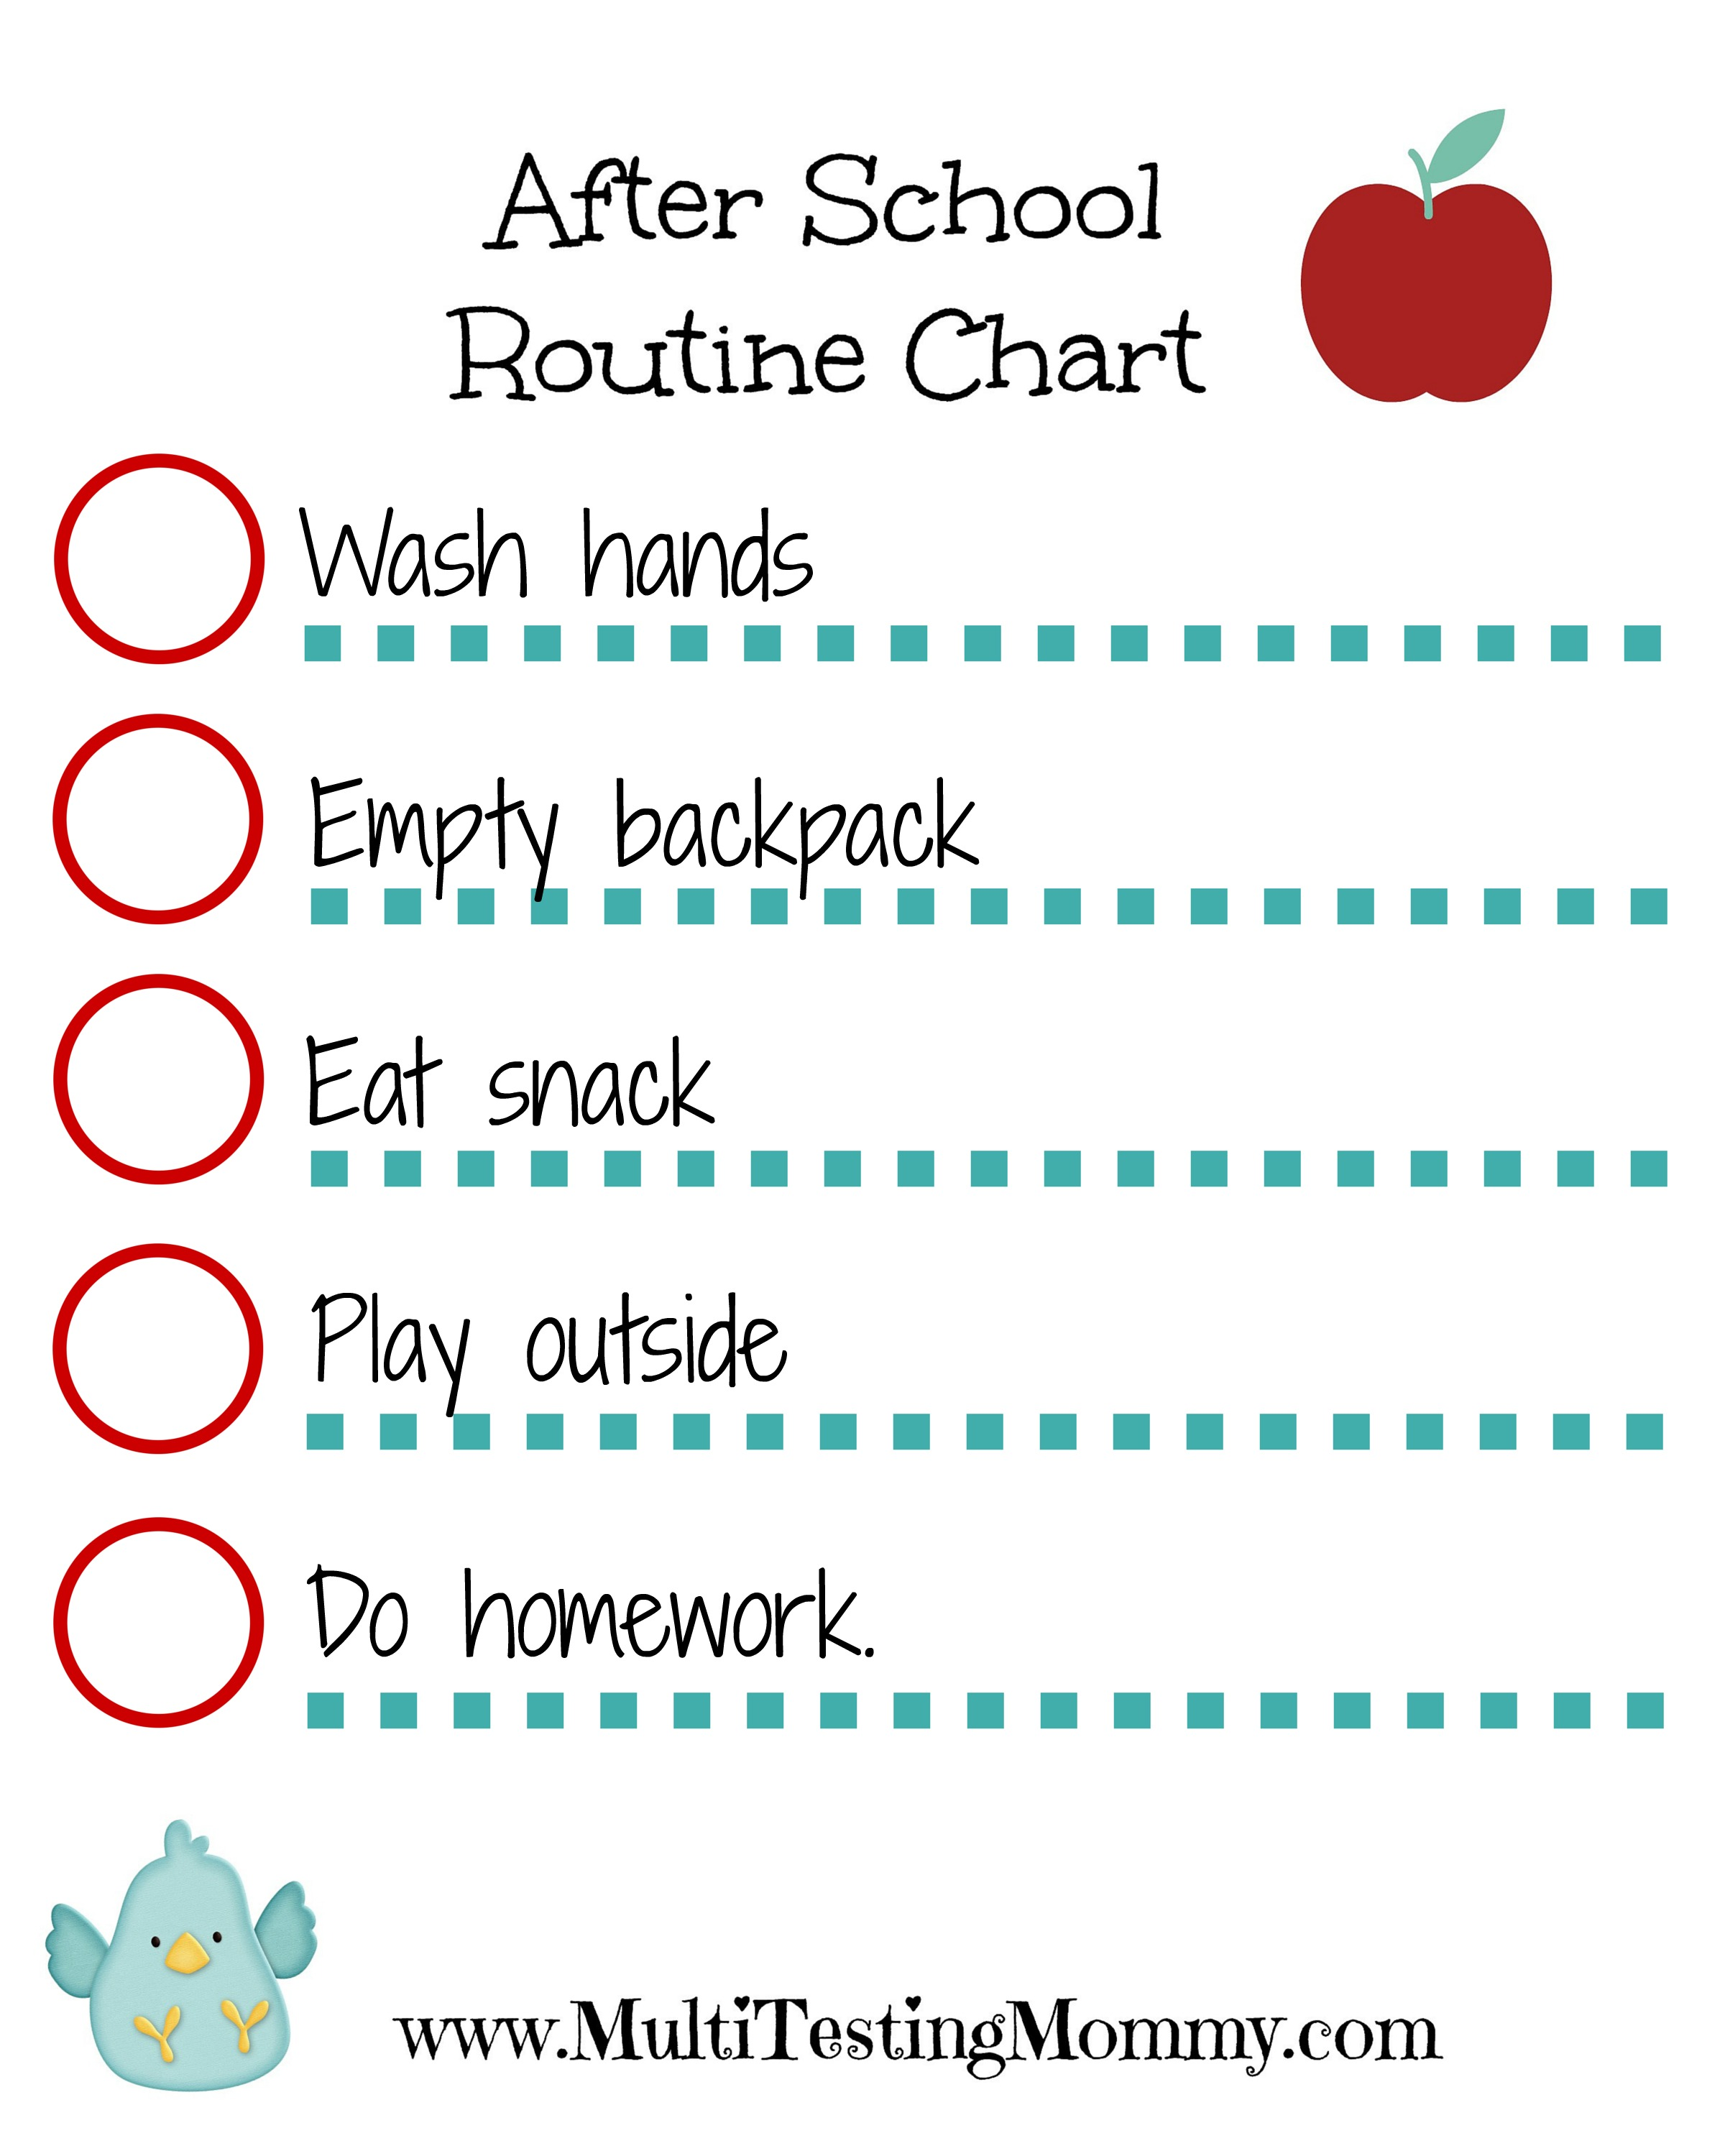 After School Routine Chart Printable